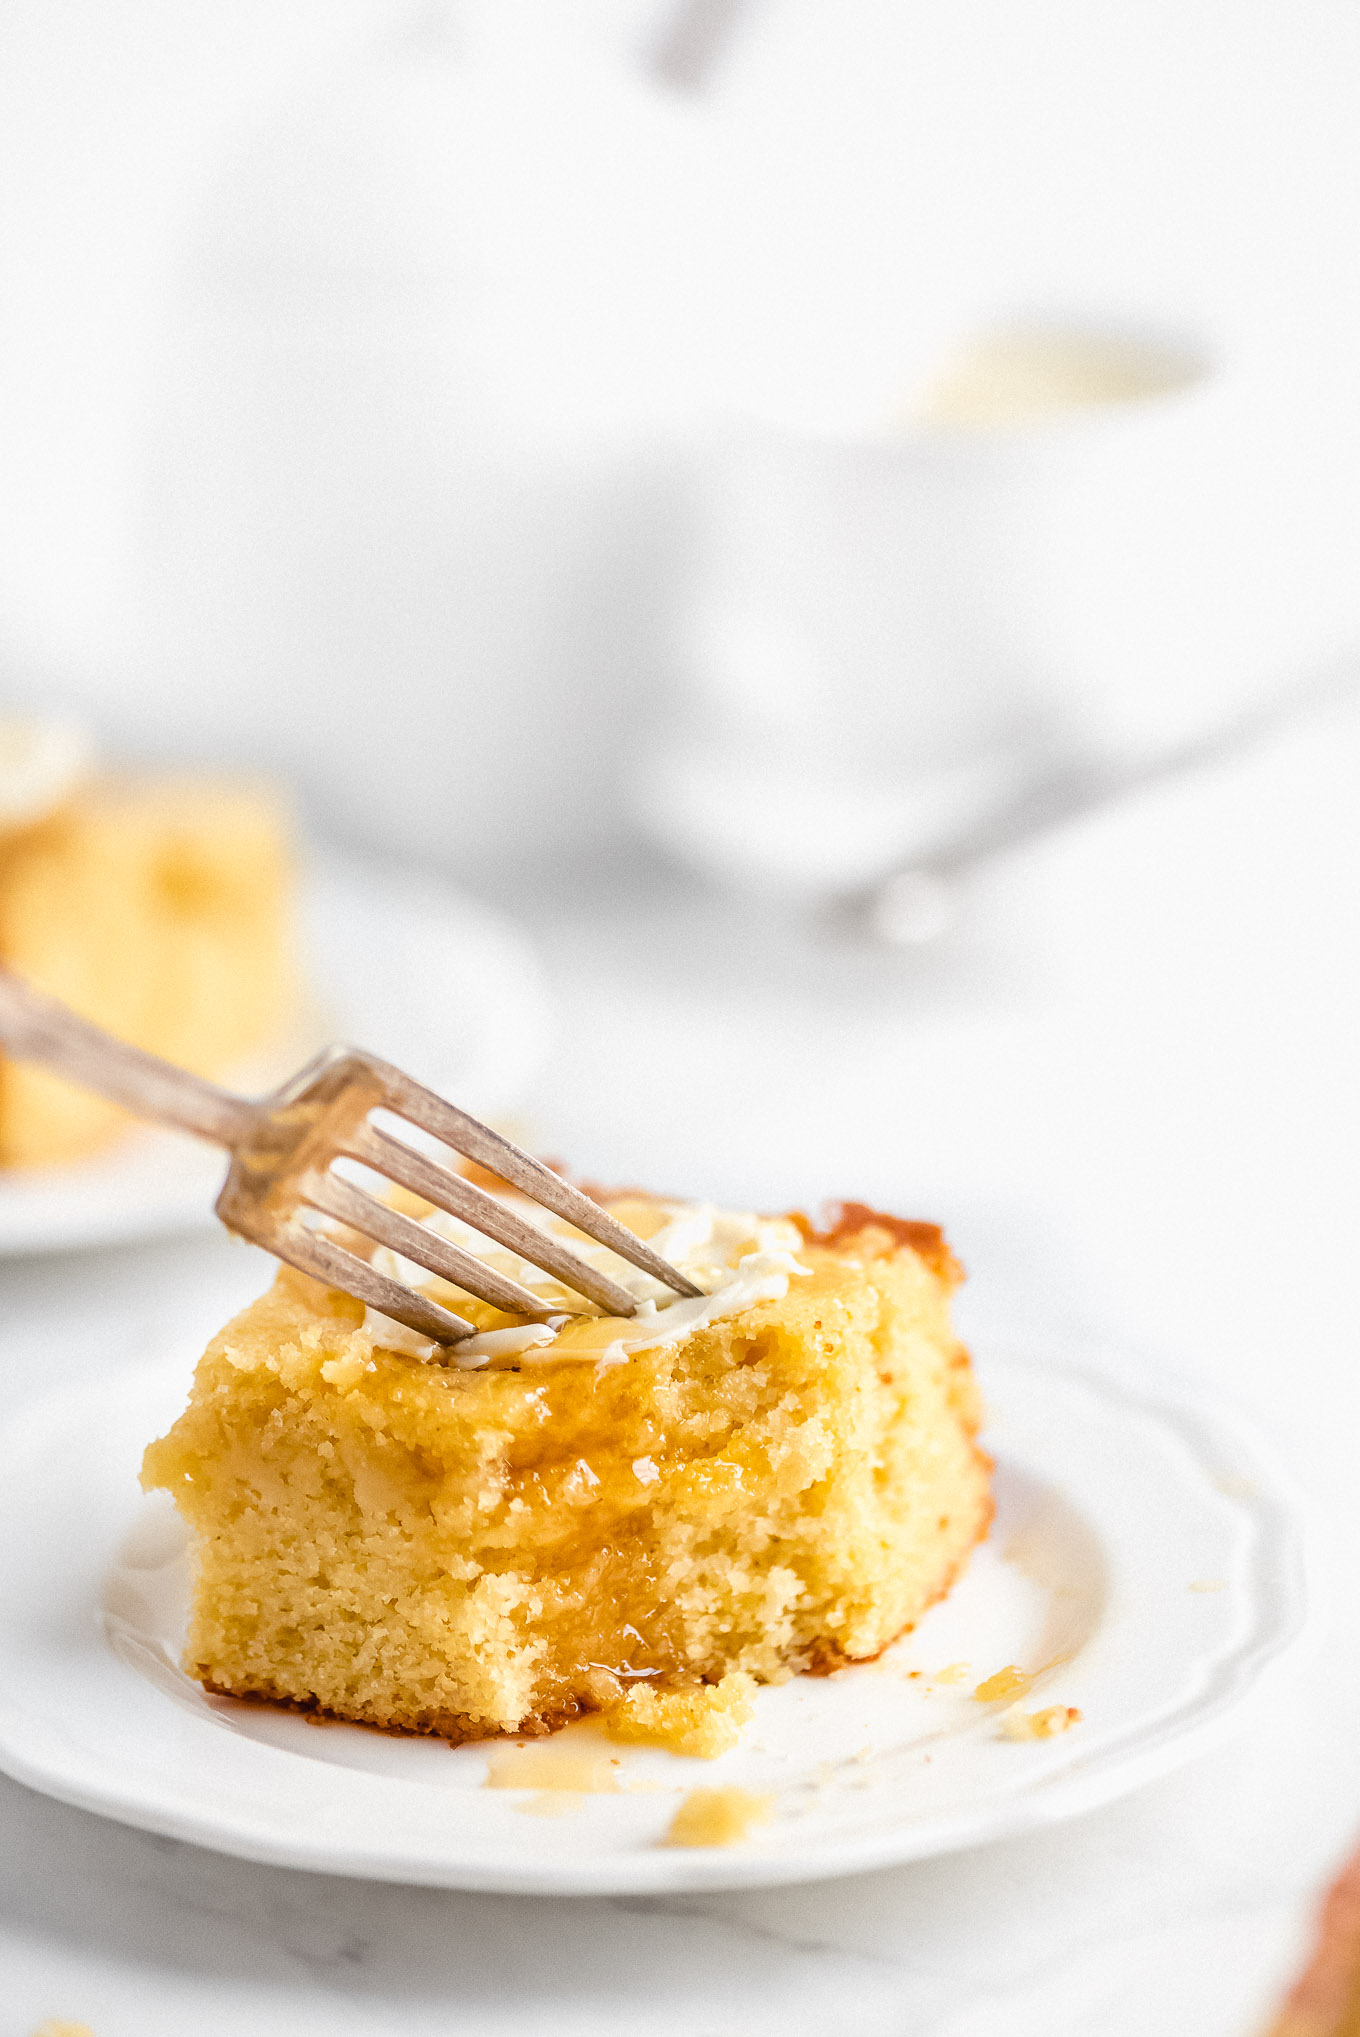 A piece of homemade cornbread on a plate topped with butter and honey and a fork cutting into it.